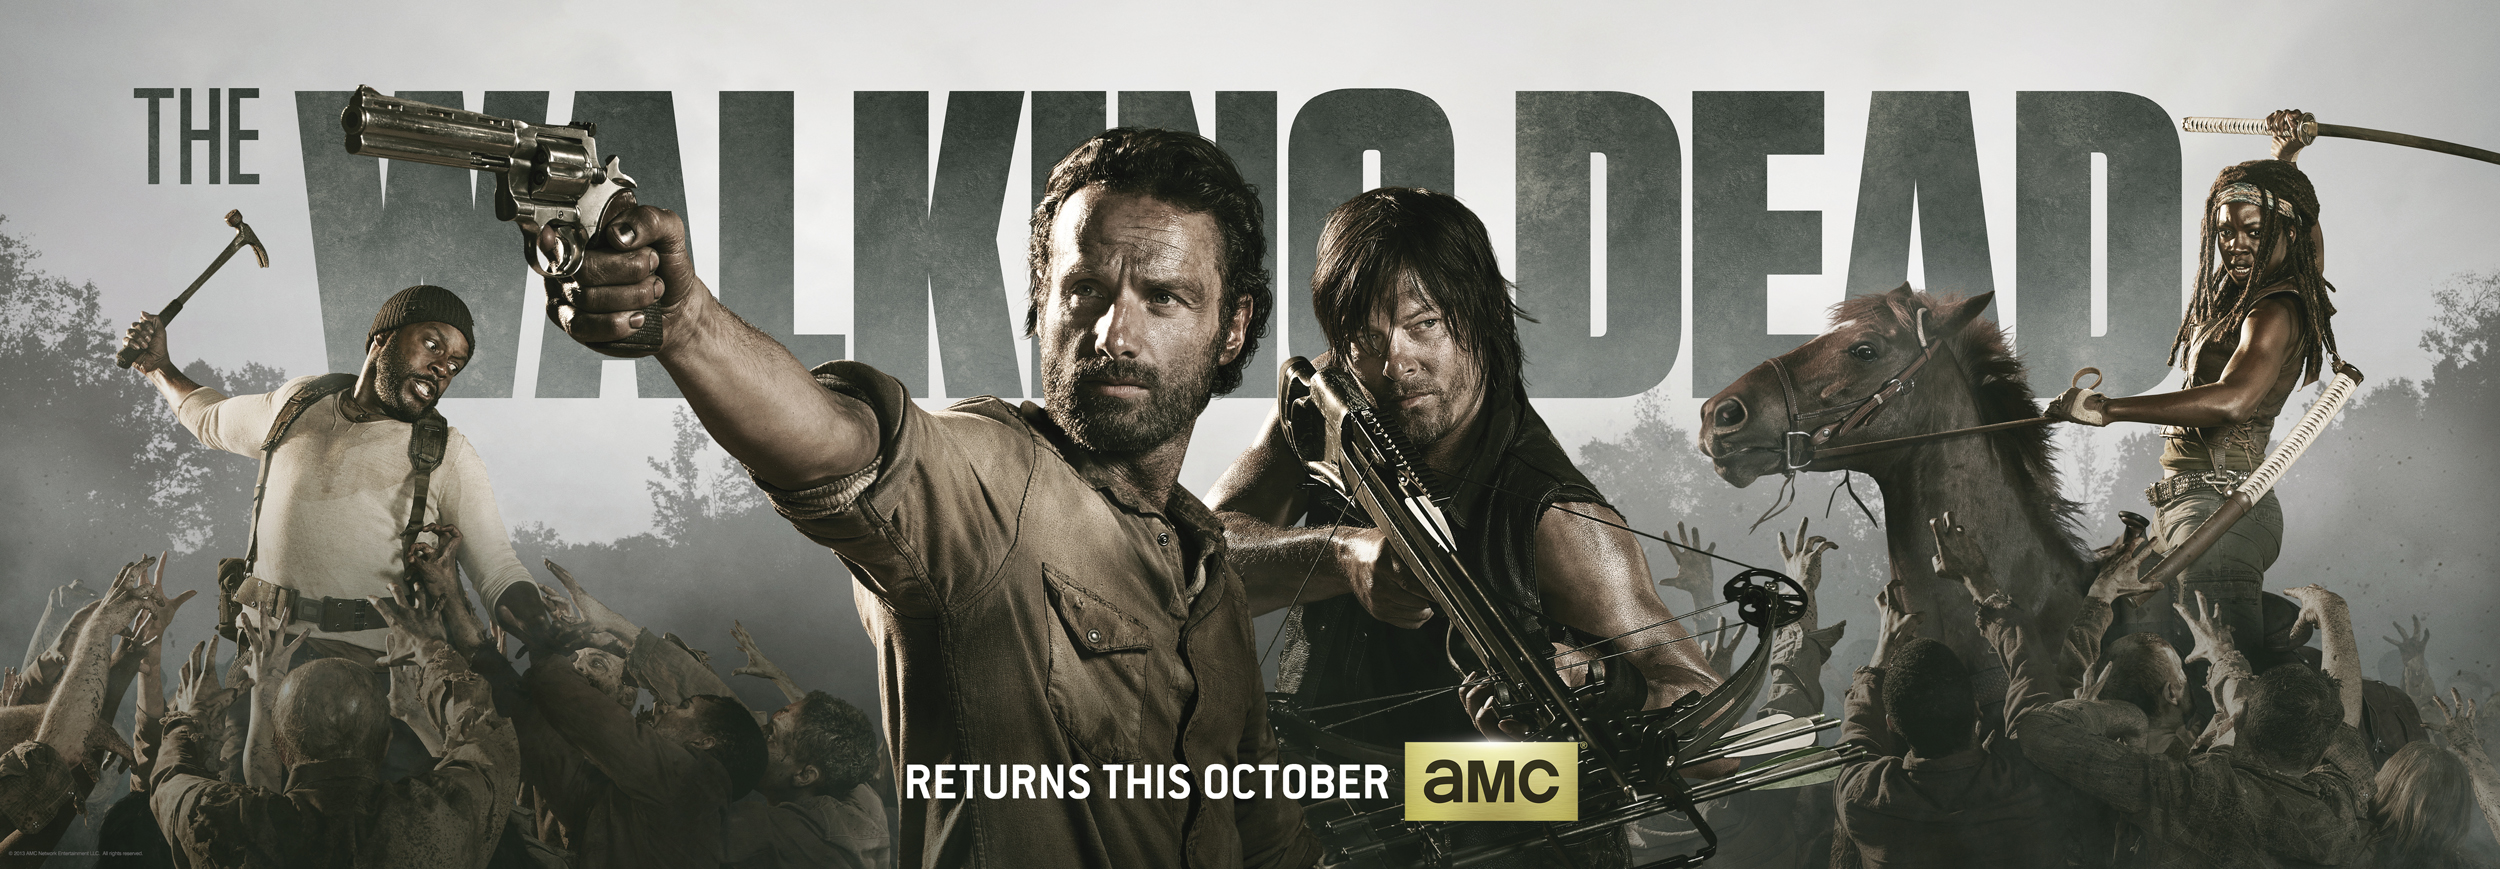 THE WALKING DEAD SEASON 5 TRAILER (San Diego Comic Con) [informacion ...